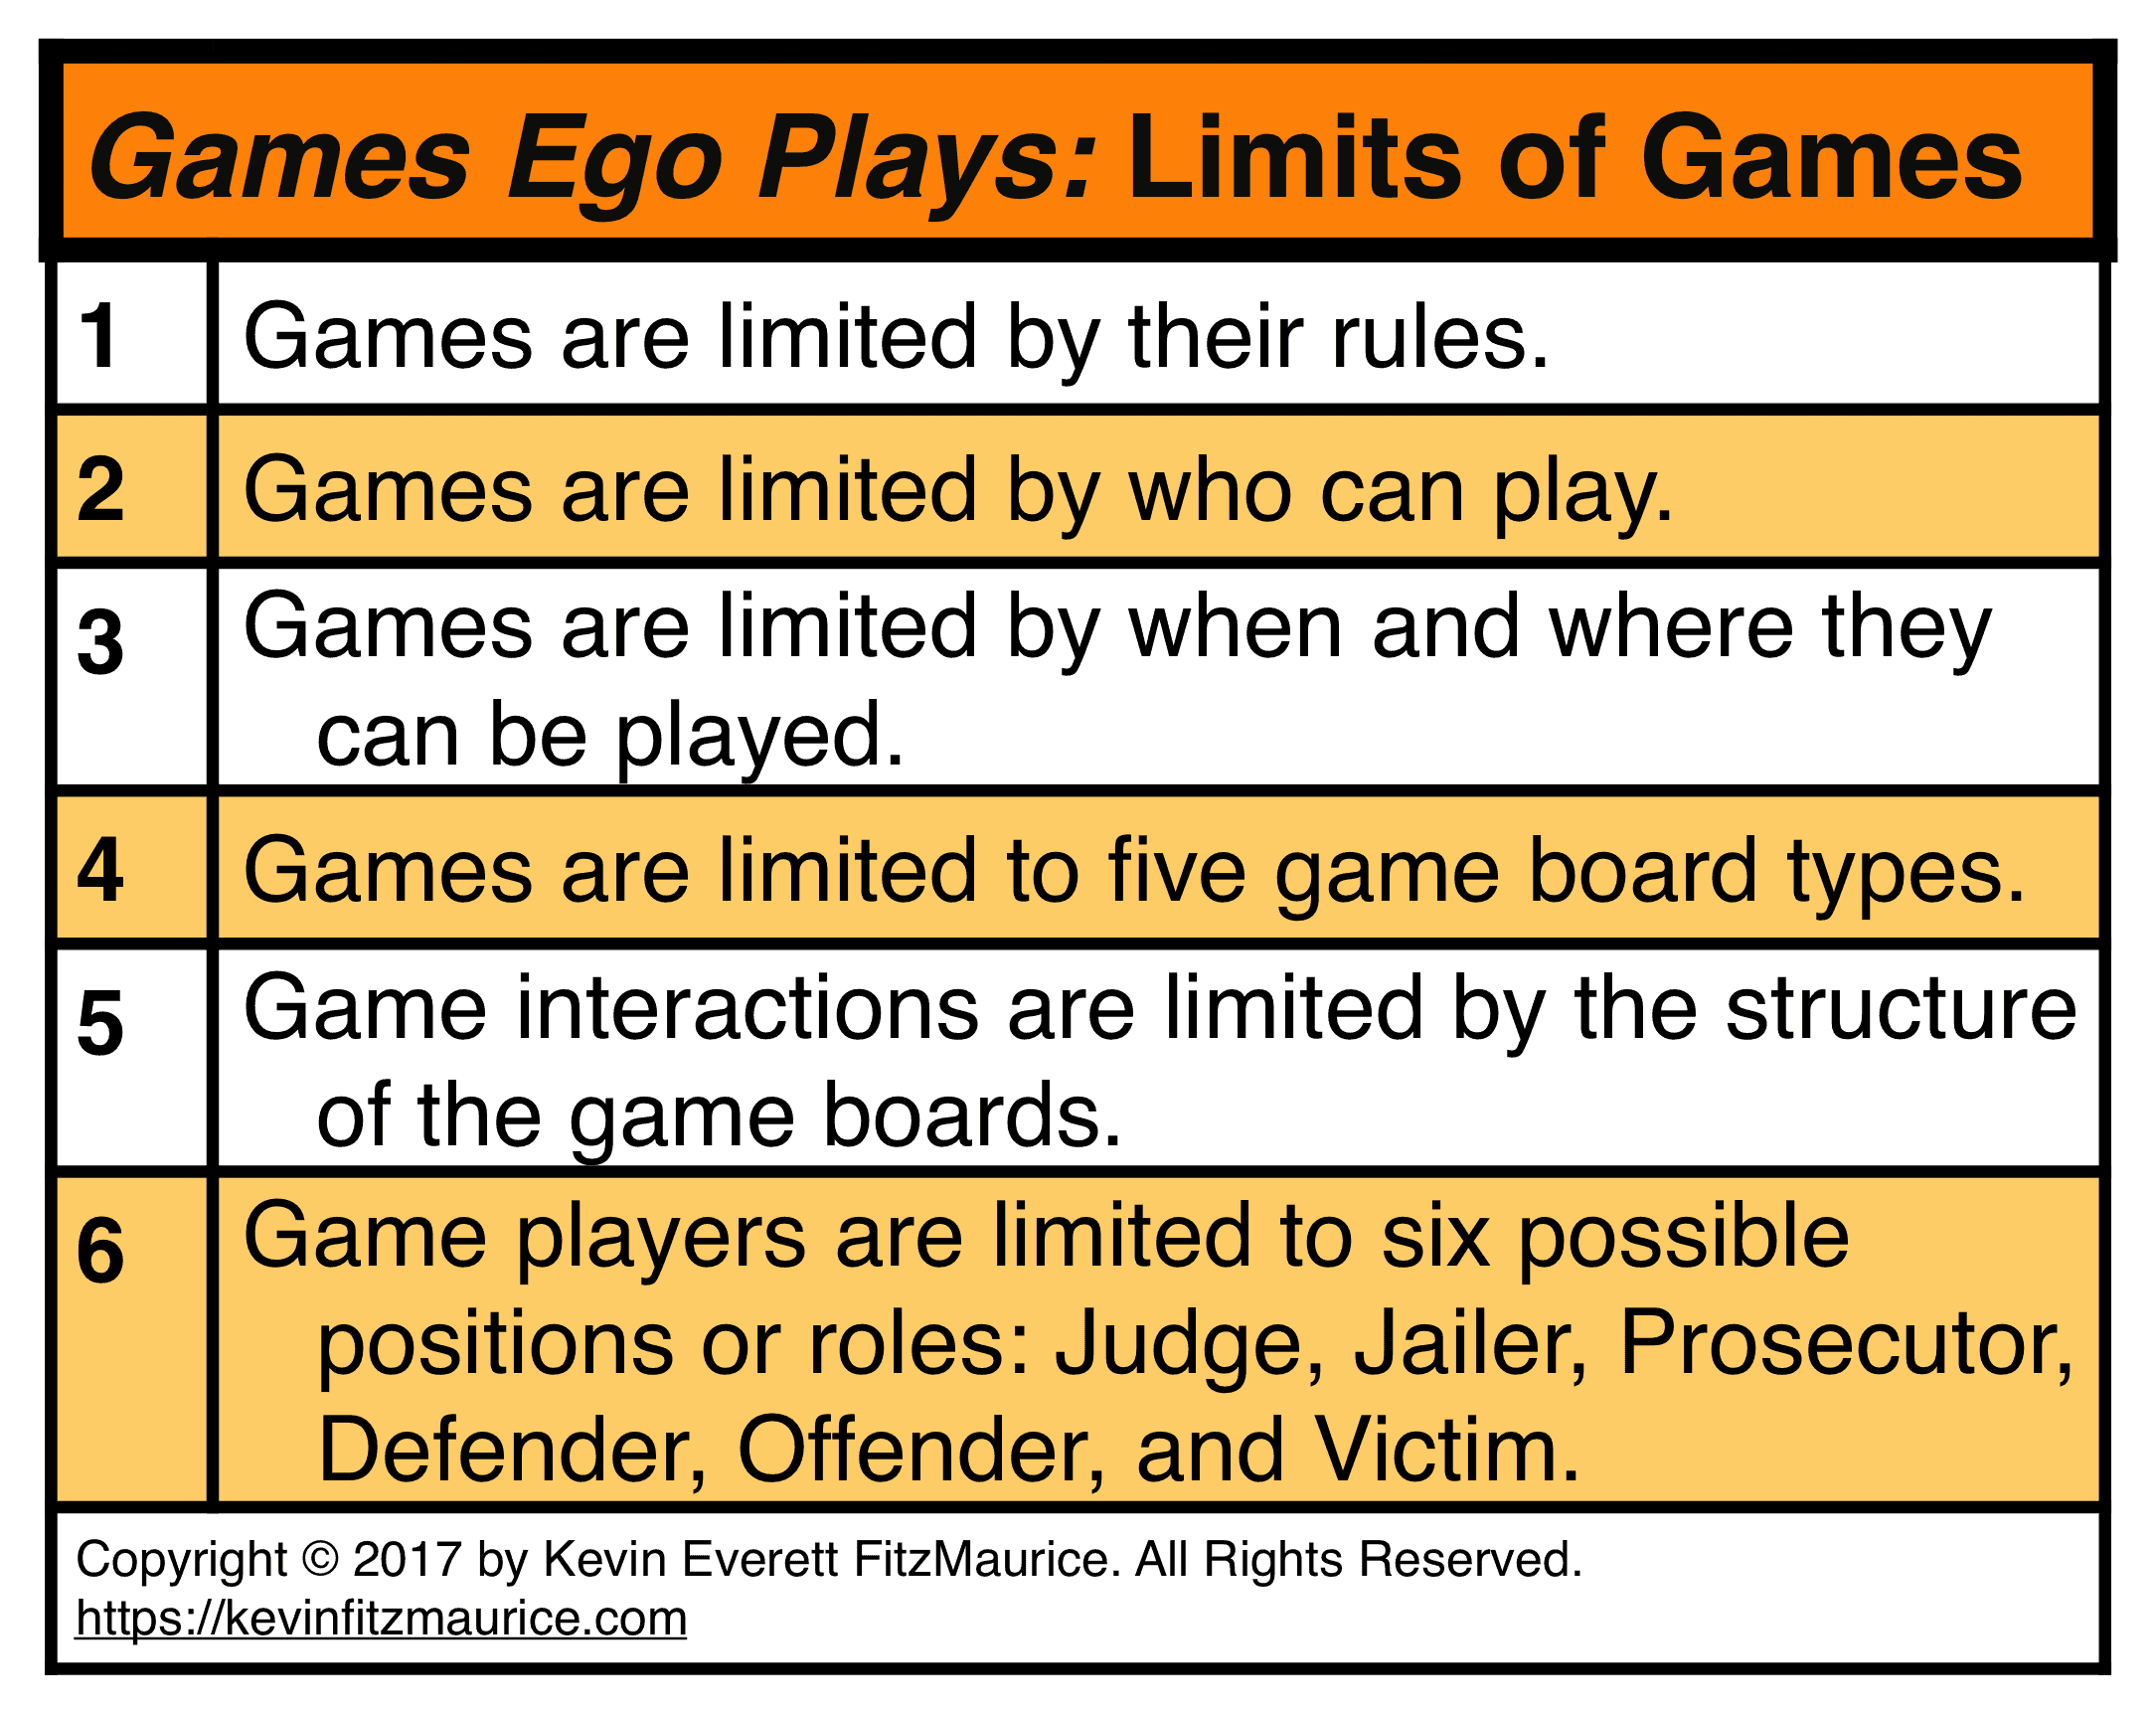 Limits of Games According to Games Ego Plays